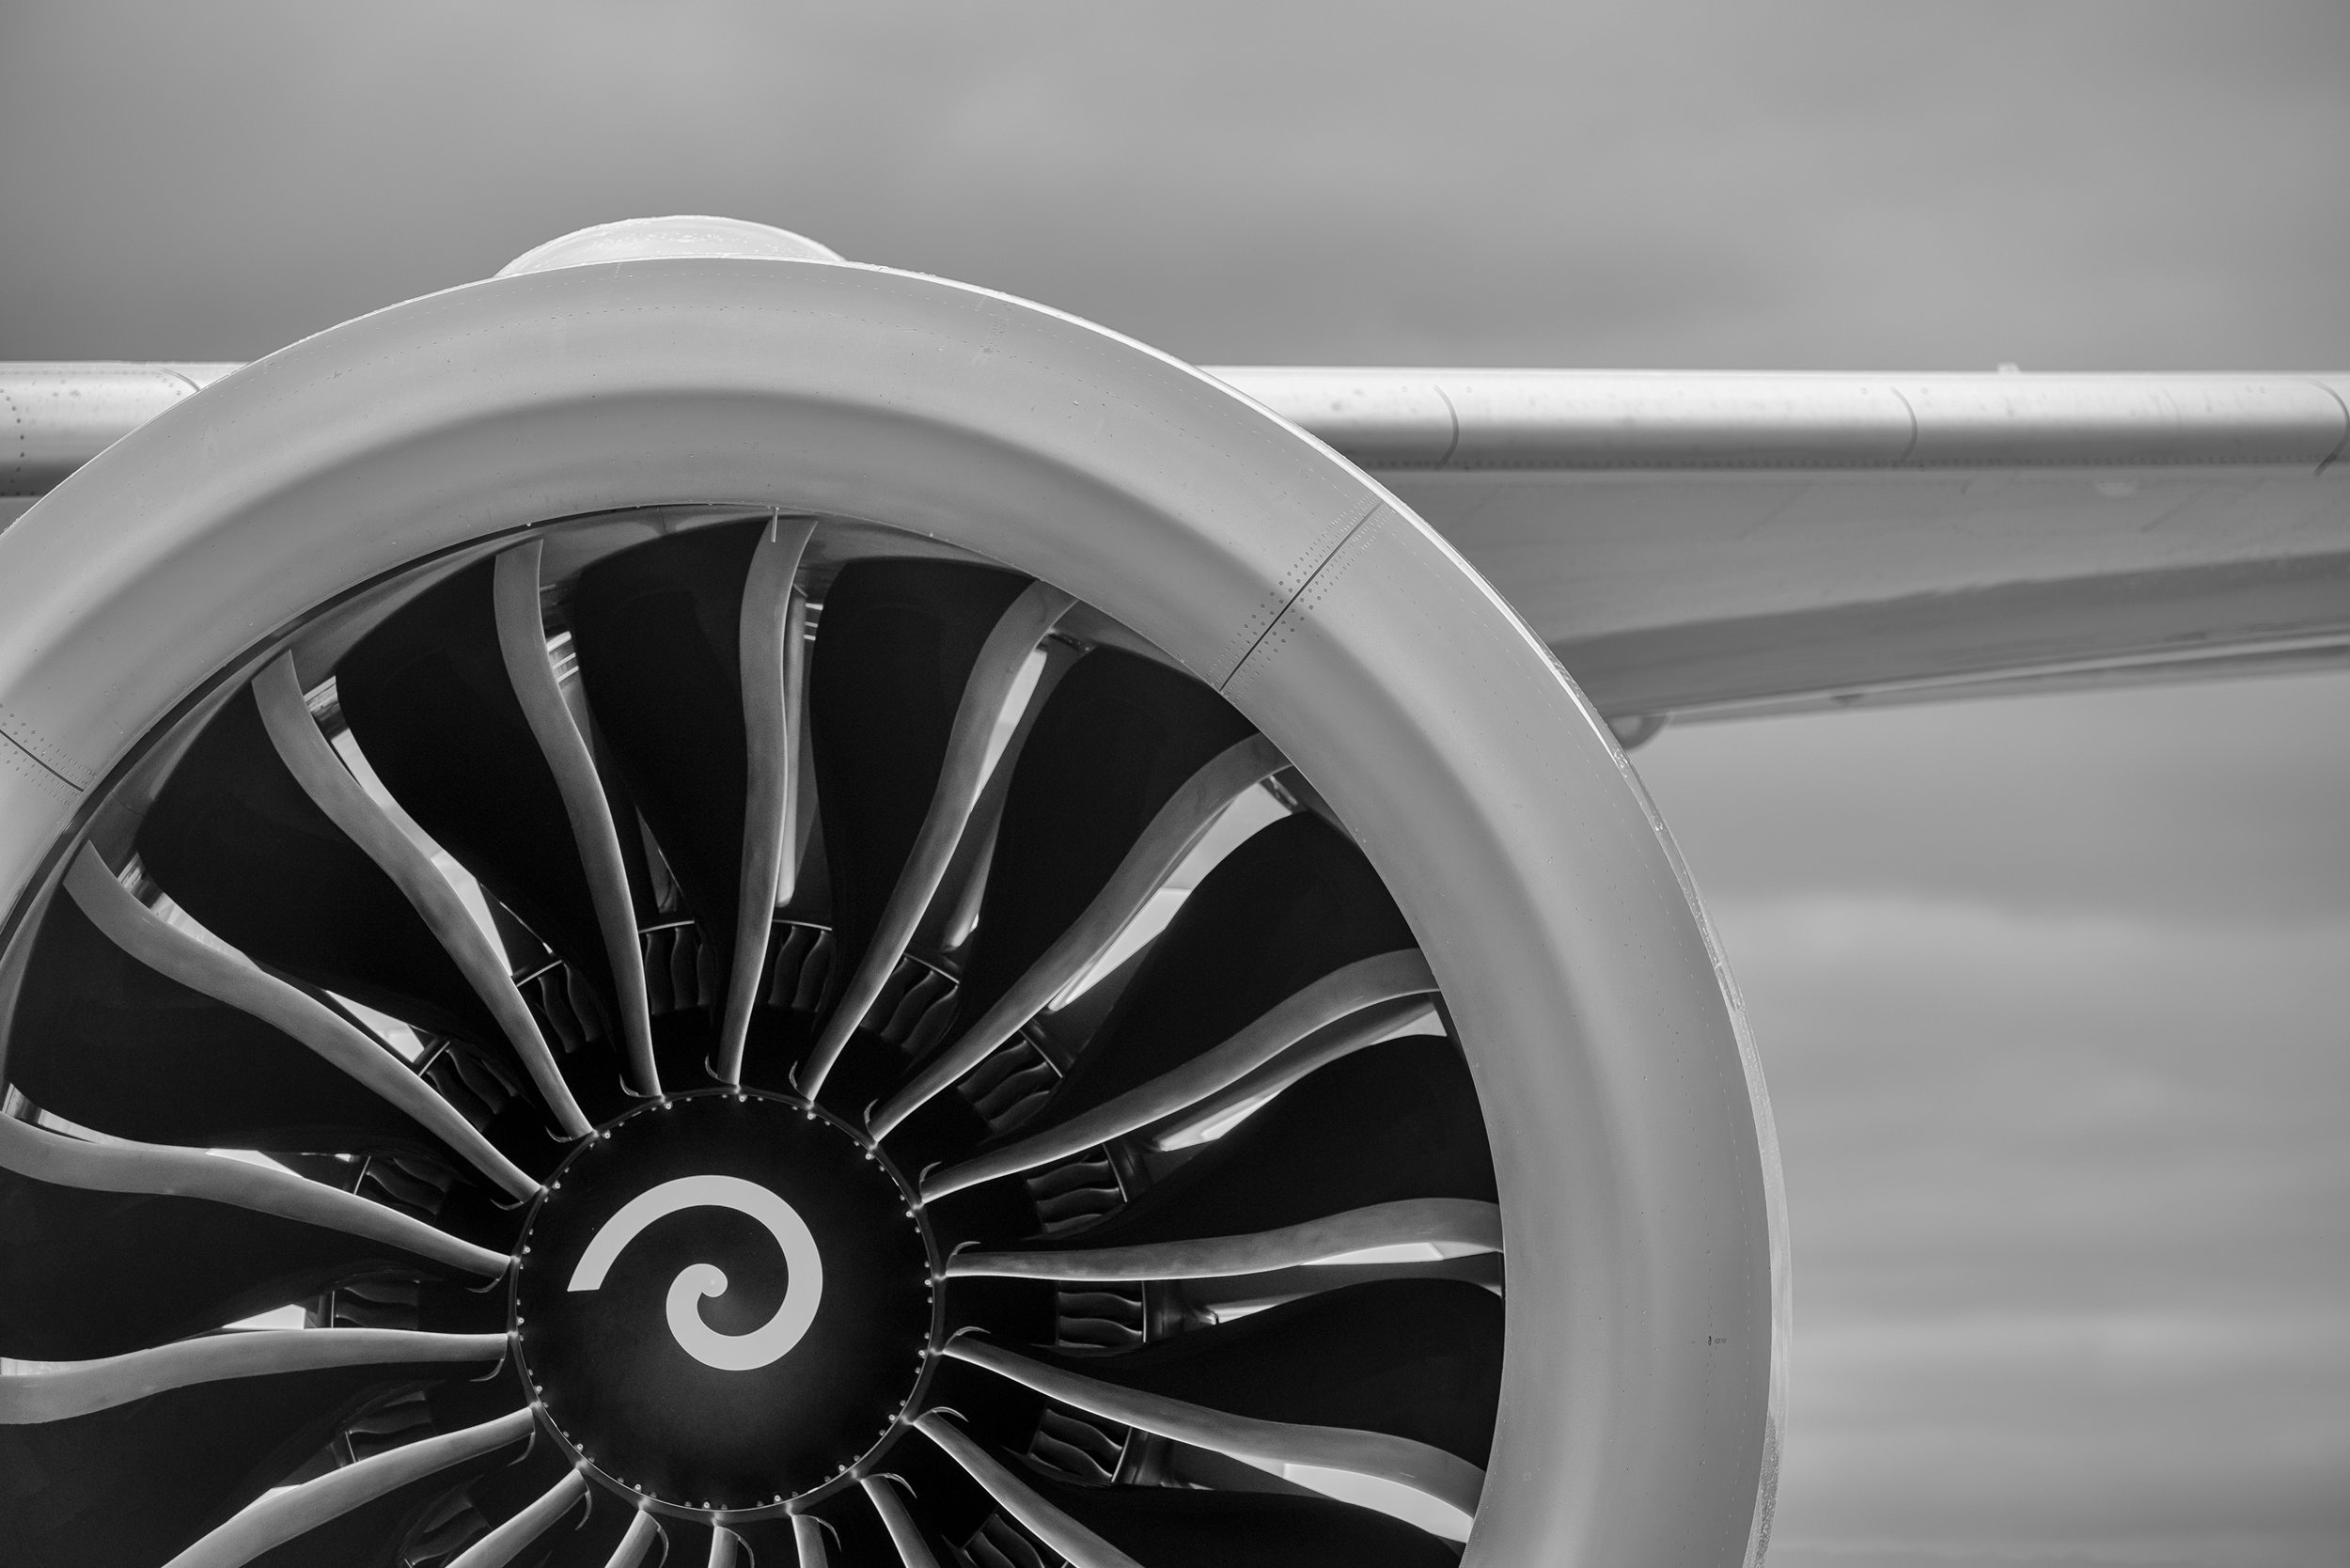 Detail of Qantas Dreamliner 'Great Southern Land'  GEnx engine  on arrival at Adelaide Airport. Fun Dreamliner fact - they can start both engines at the same time! Shot on a Nikon D800 and processed in Lightroom, Photoshop and Nik Silver Efex.